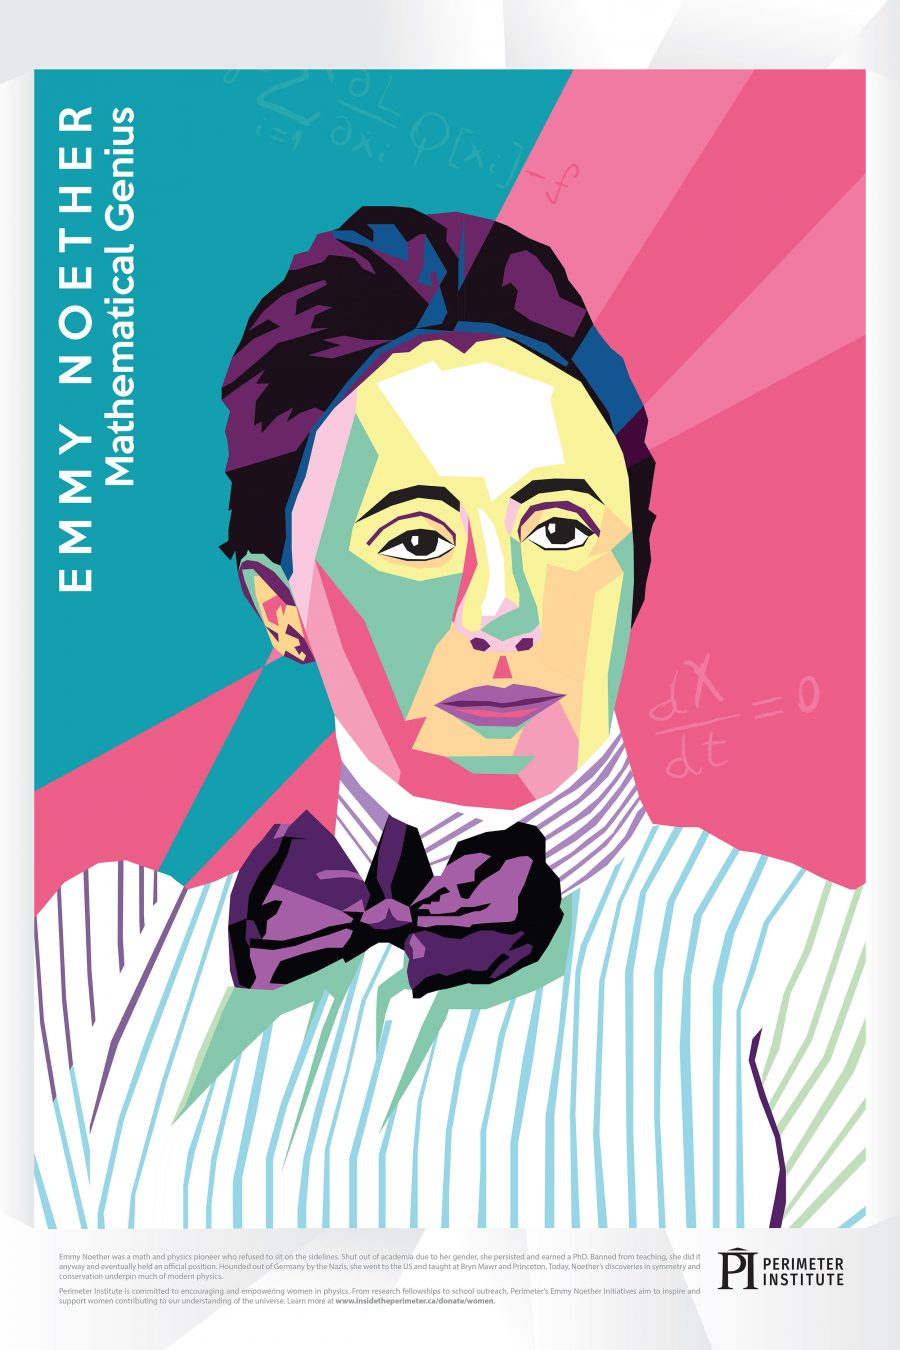 Noether Suffered Discrimination In Germany Owing Not Only To Prejudices Against Women But Also Because She Was A Jew Social Democrat And Pacifist